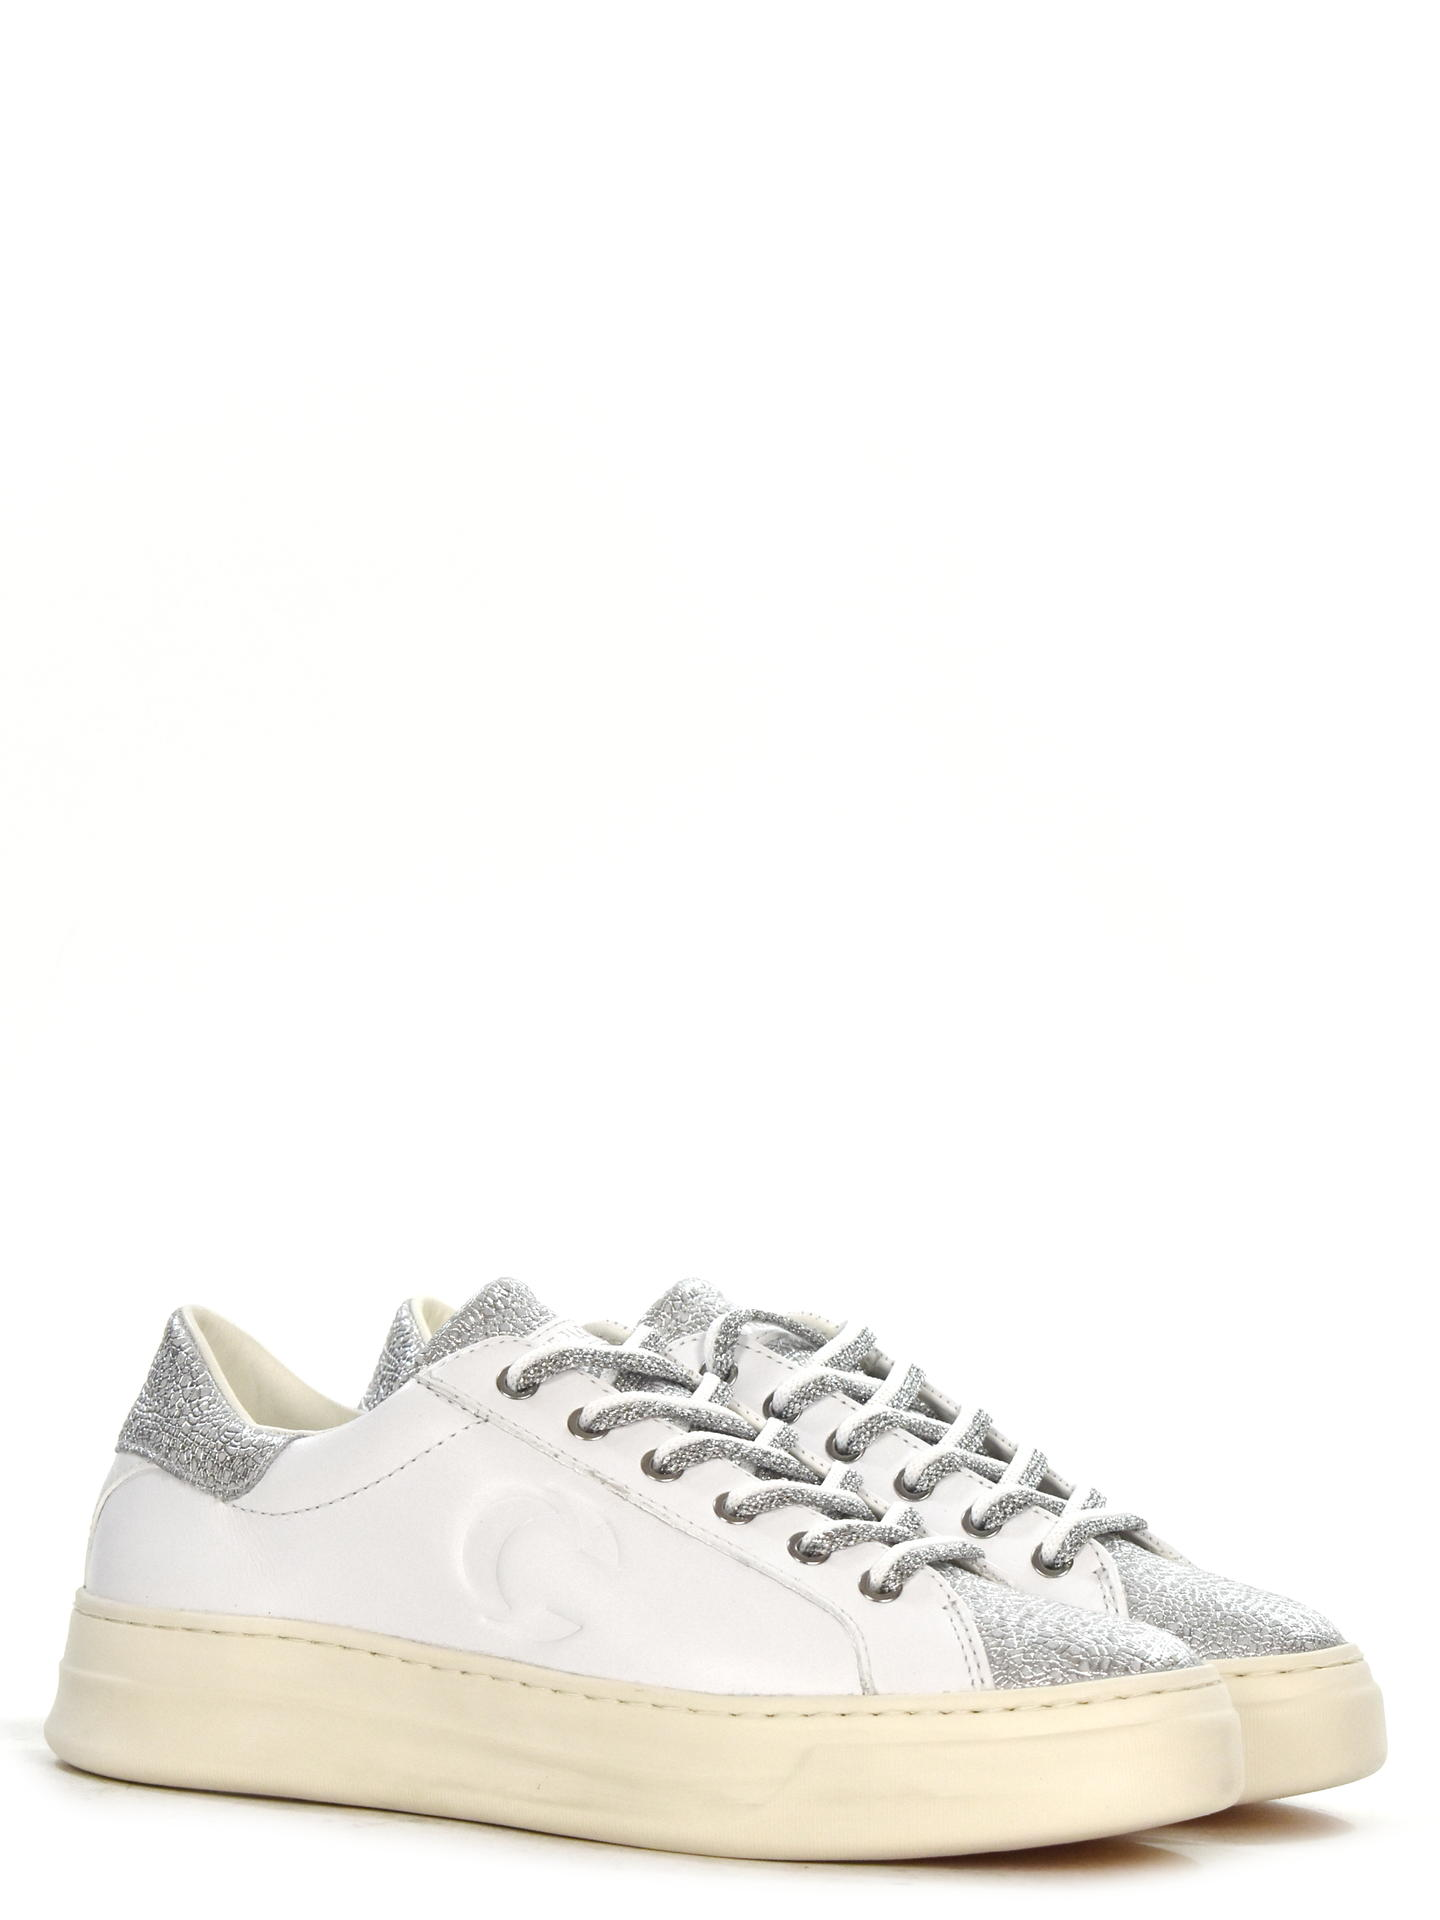 SNEAKERS CRIME LONDON 25509 BIANCO